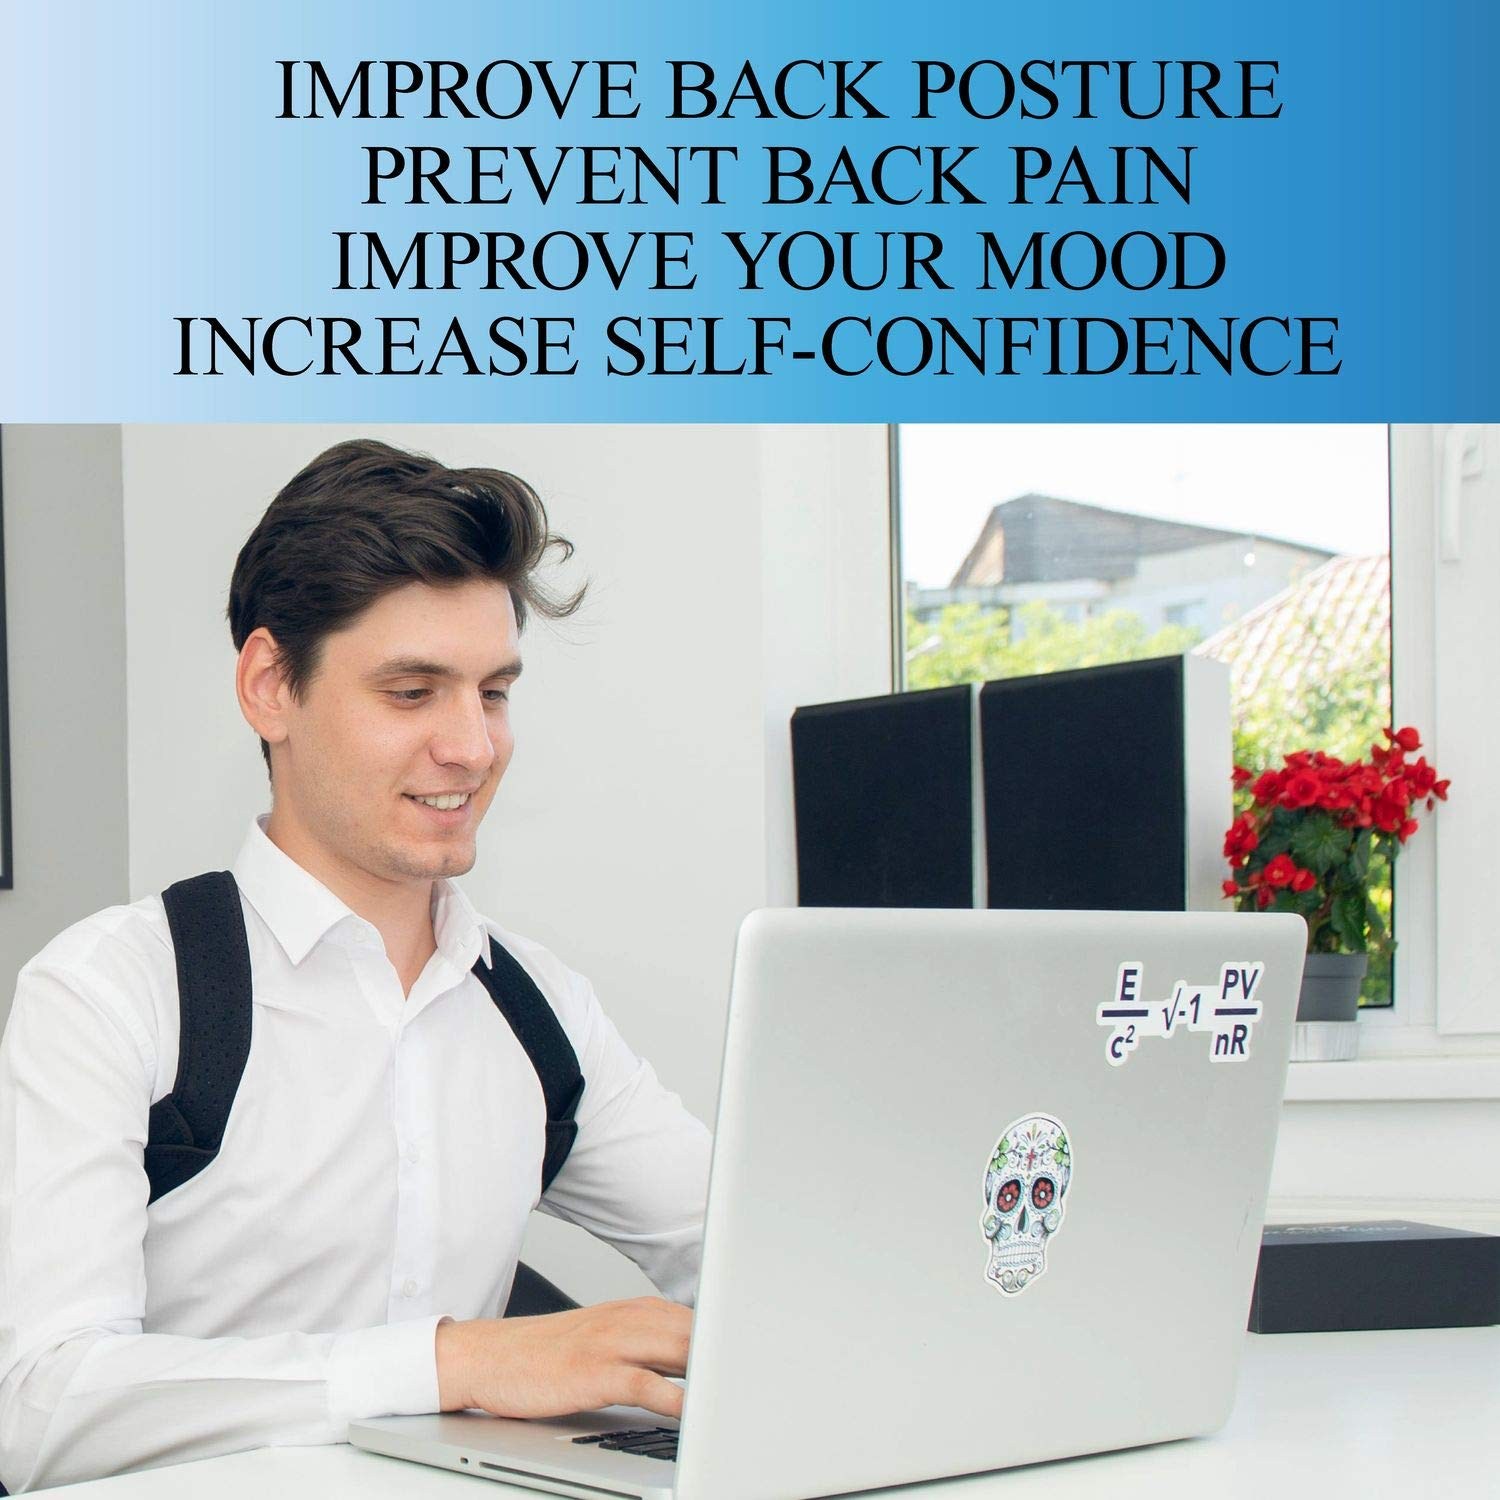 Back Posture Corrector for Women and Men-Breathable and Comfortable Clavicle Brace for Improving Posture-Adjustable and Discreet Clavicle Support Brace for Slouching & Hunching by Roxattract (Image #8)